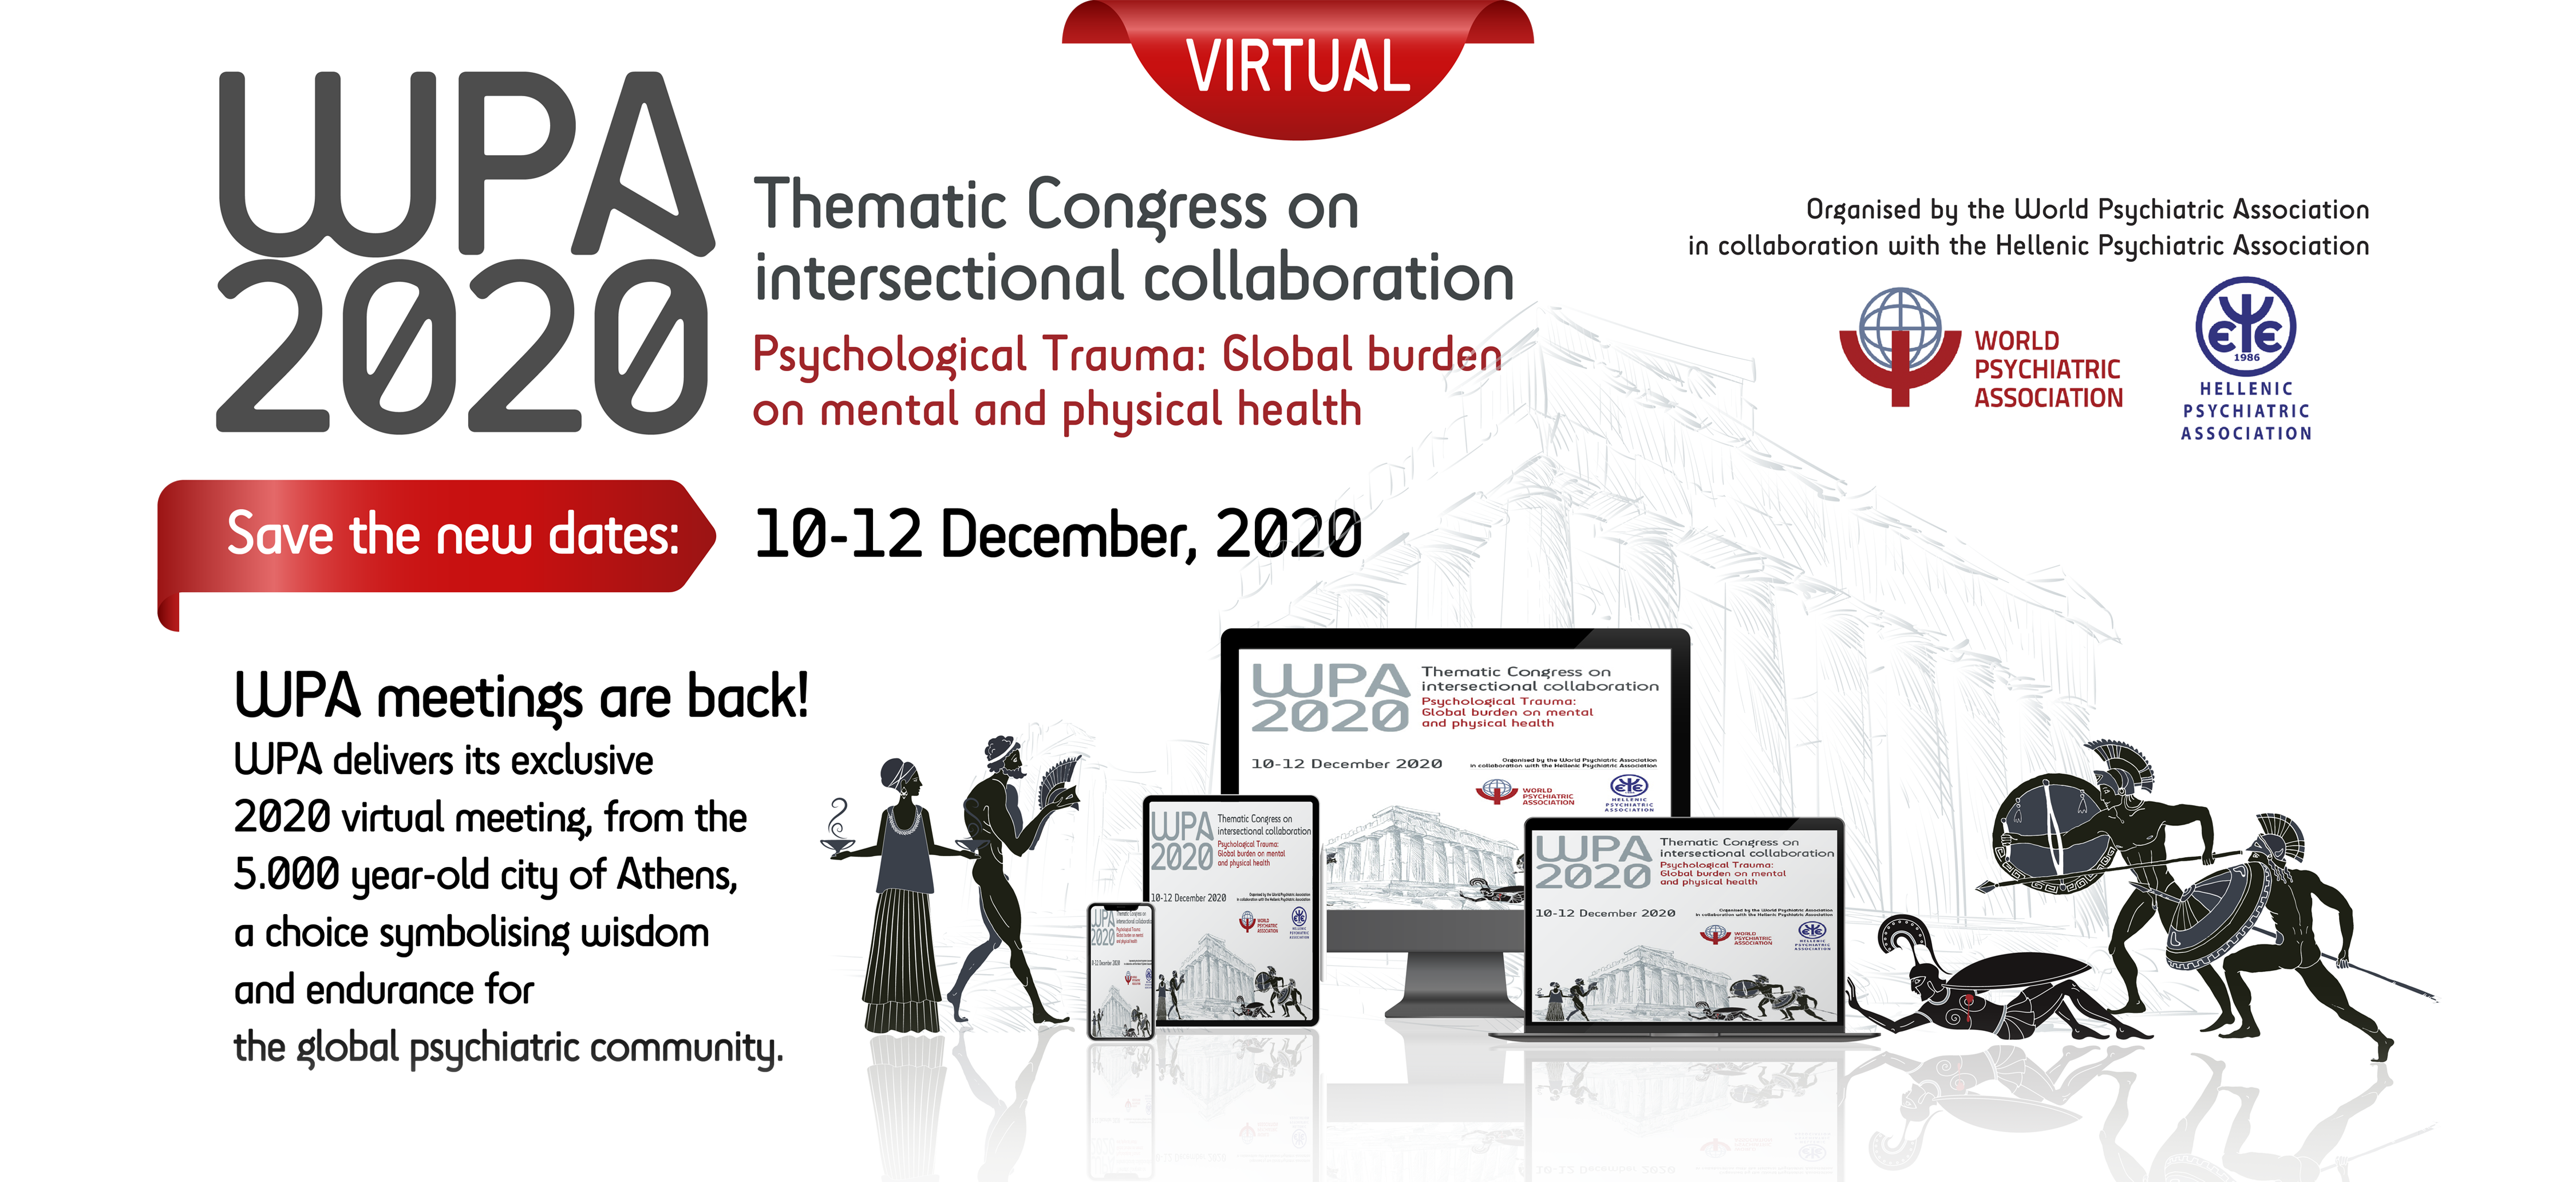 VIRTUAL WPA Thematic Congress on Intersectional Collaboration | 10-12 December 2020 | Athens - Greece